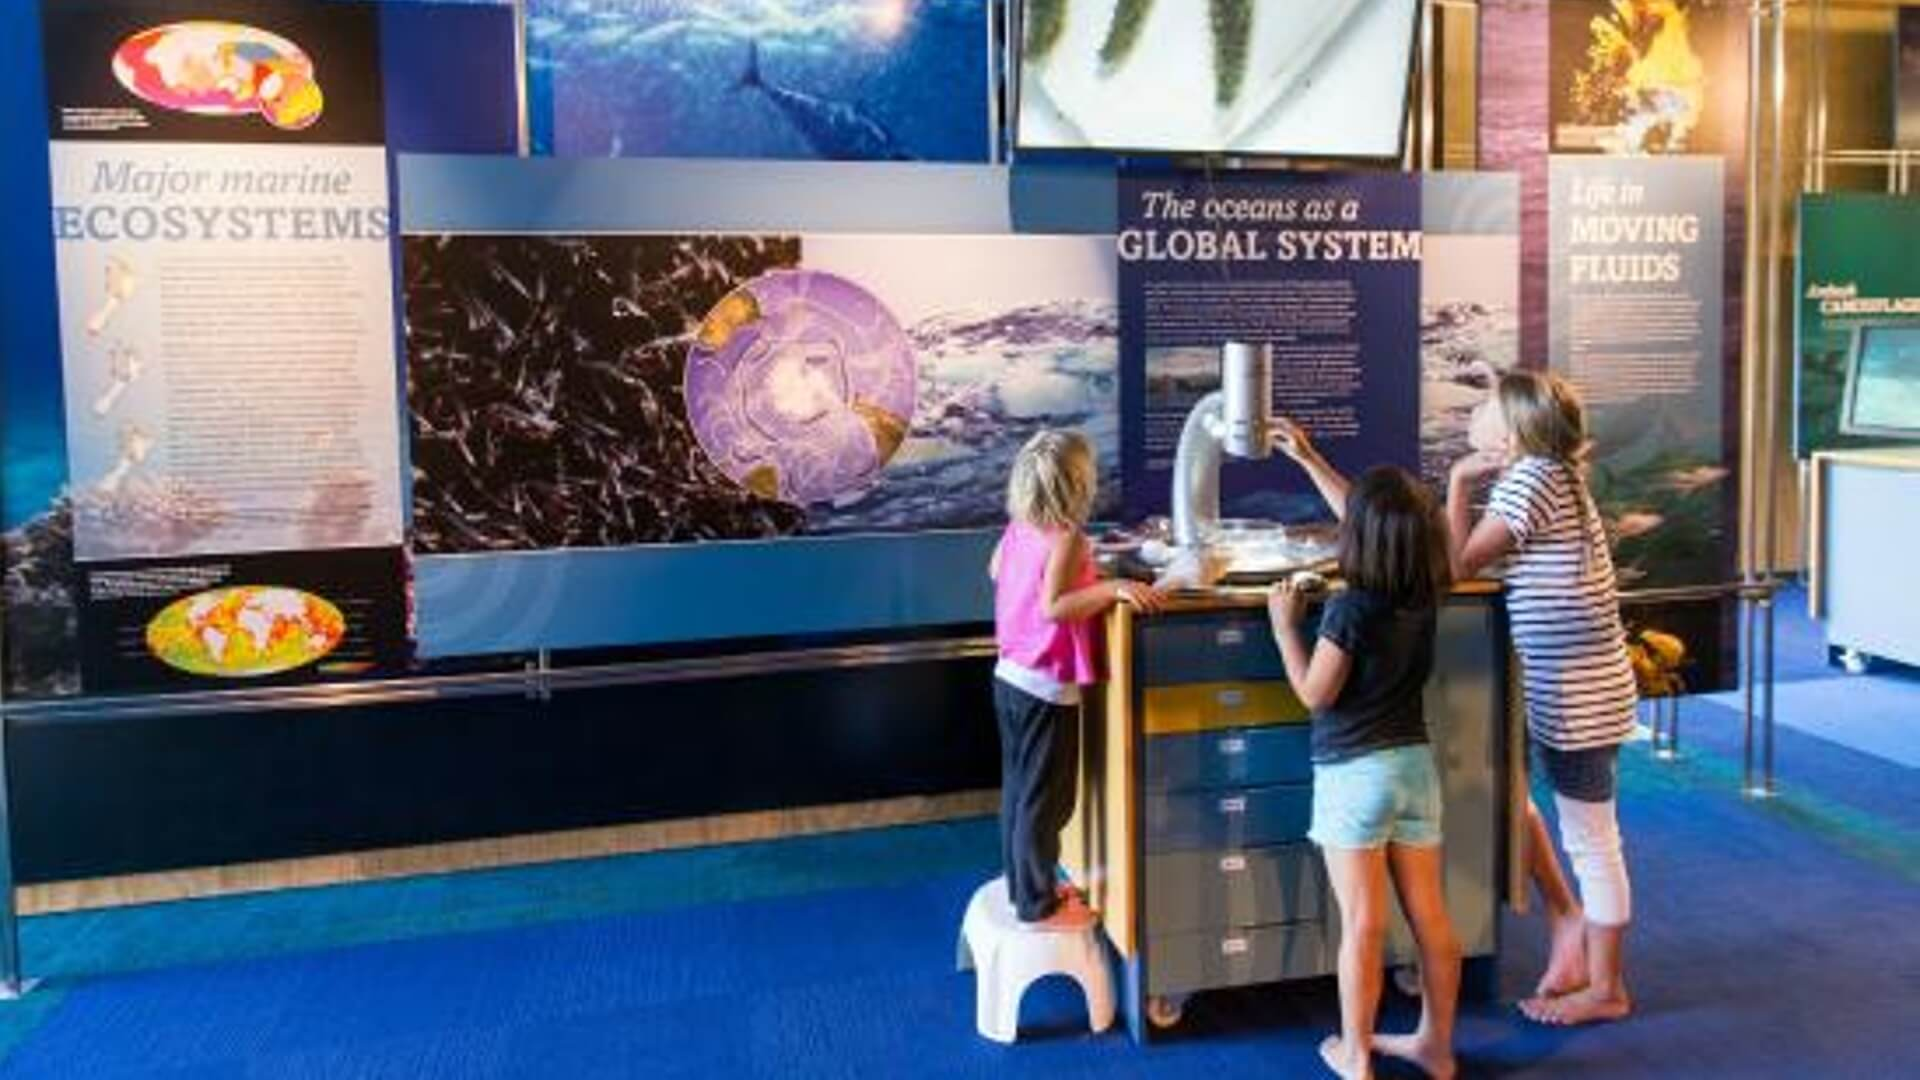 Goat Island Marine Reserve - Top 10 things to do with kids